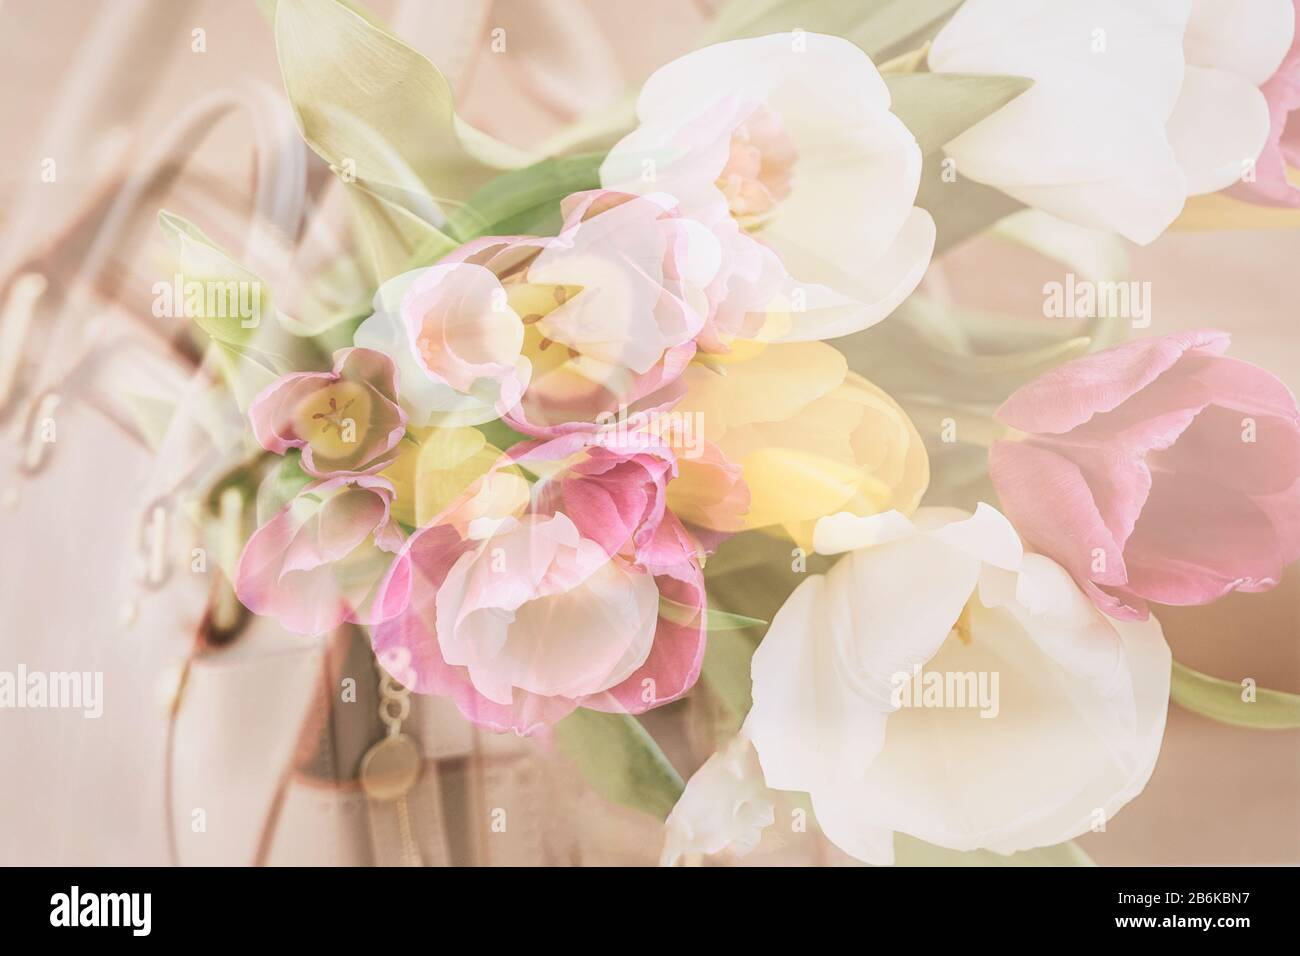 Blurred floral background, double exposure, colorful tulips. Concept of spring, holidays and gifts Stock Photo